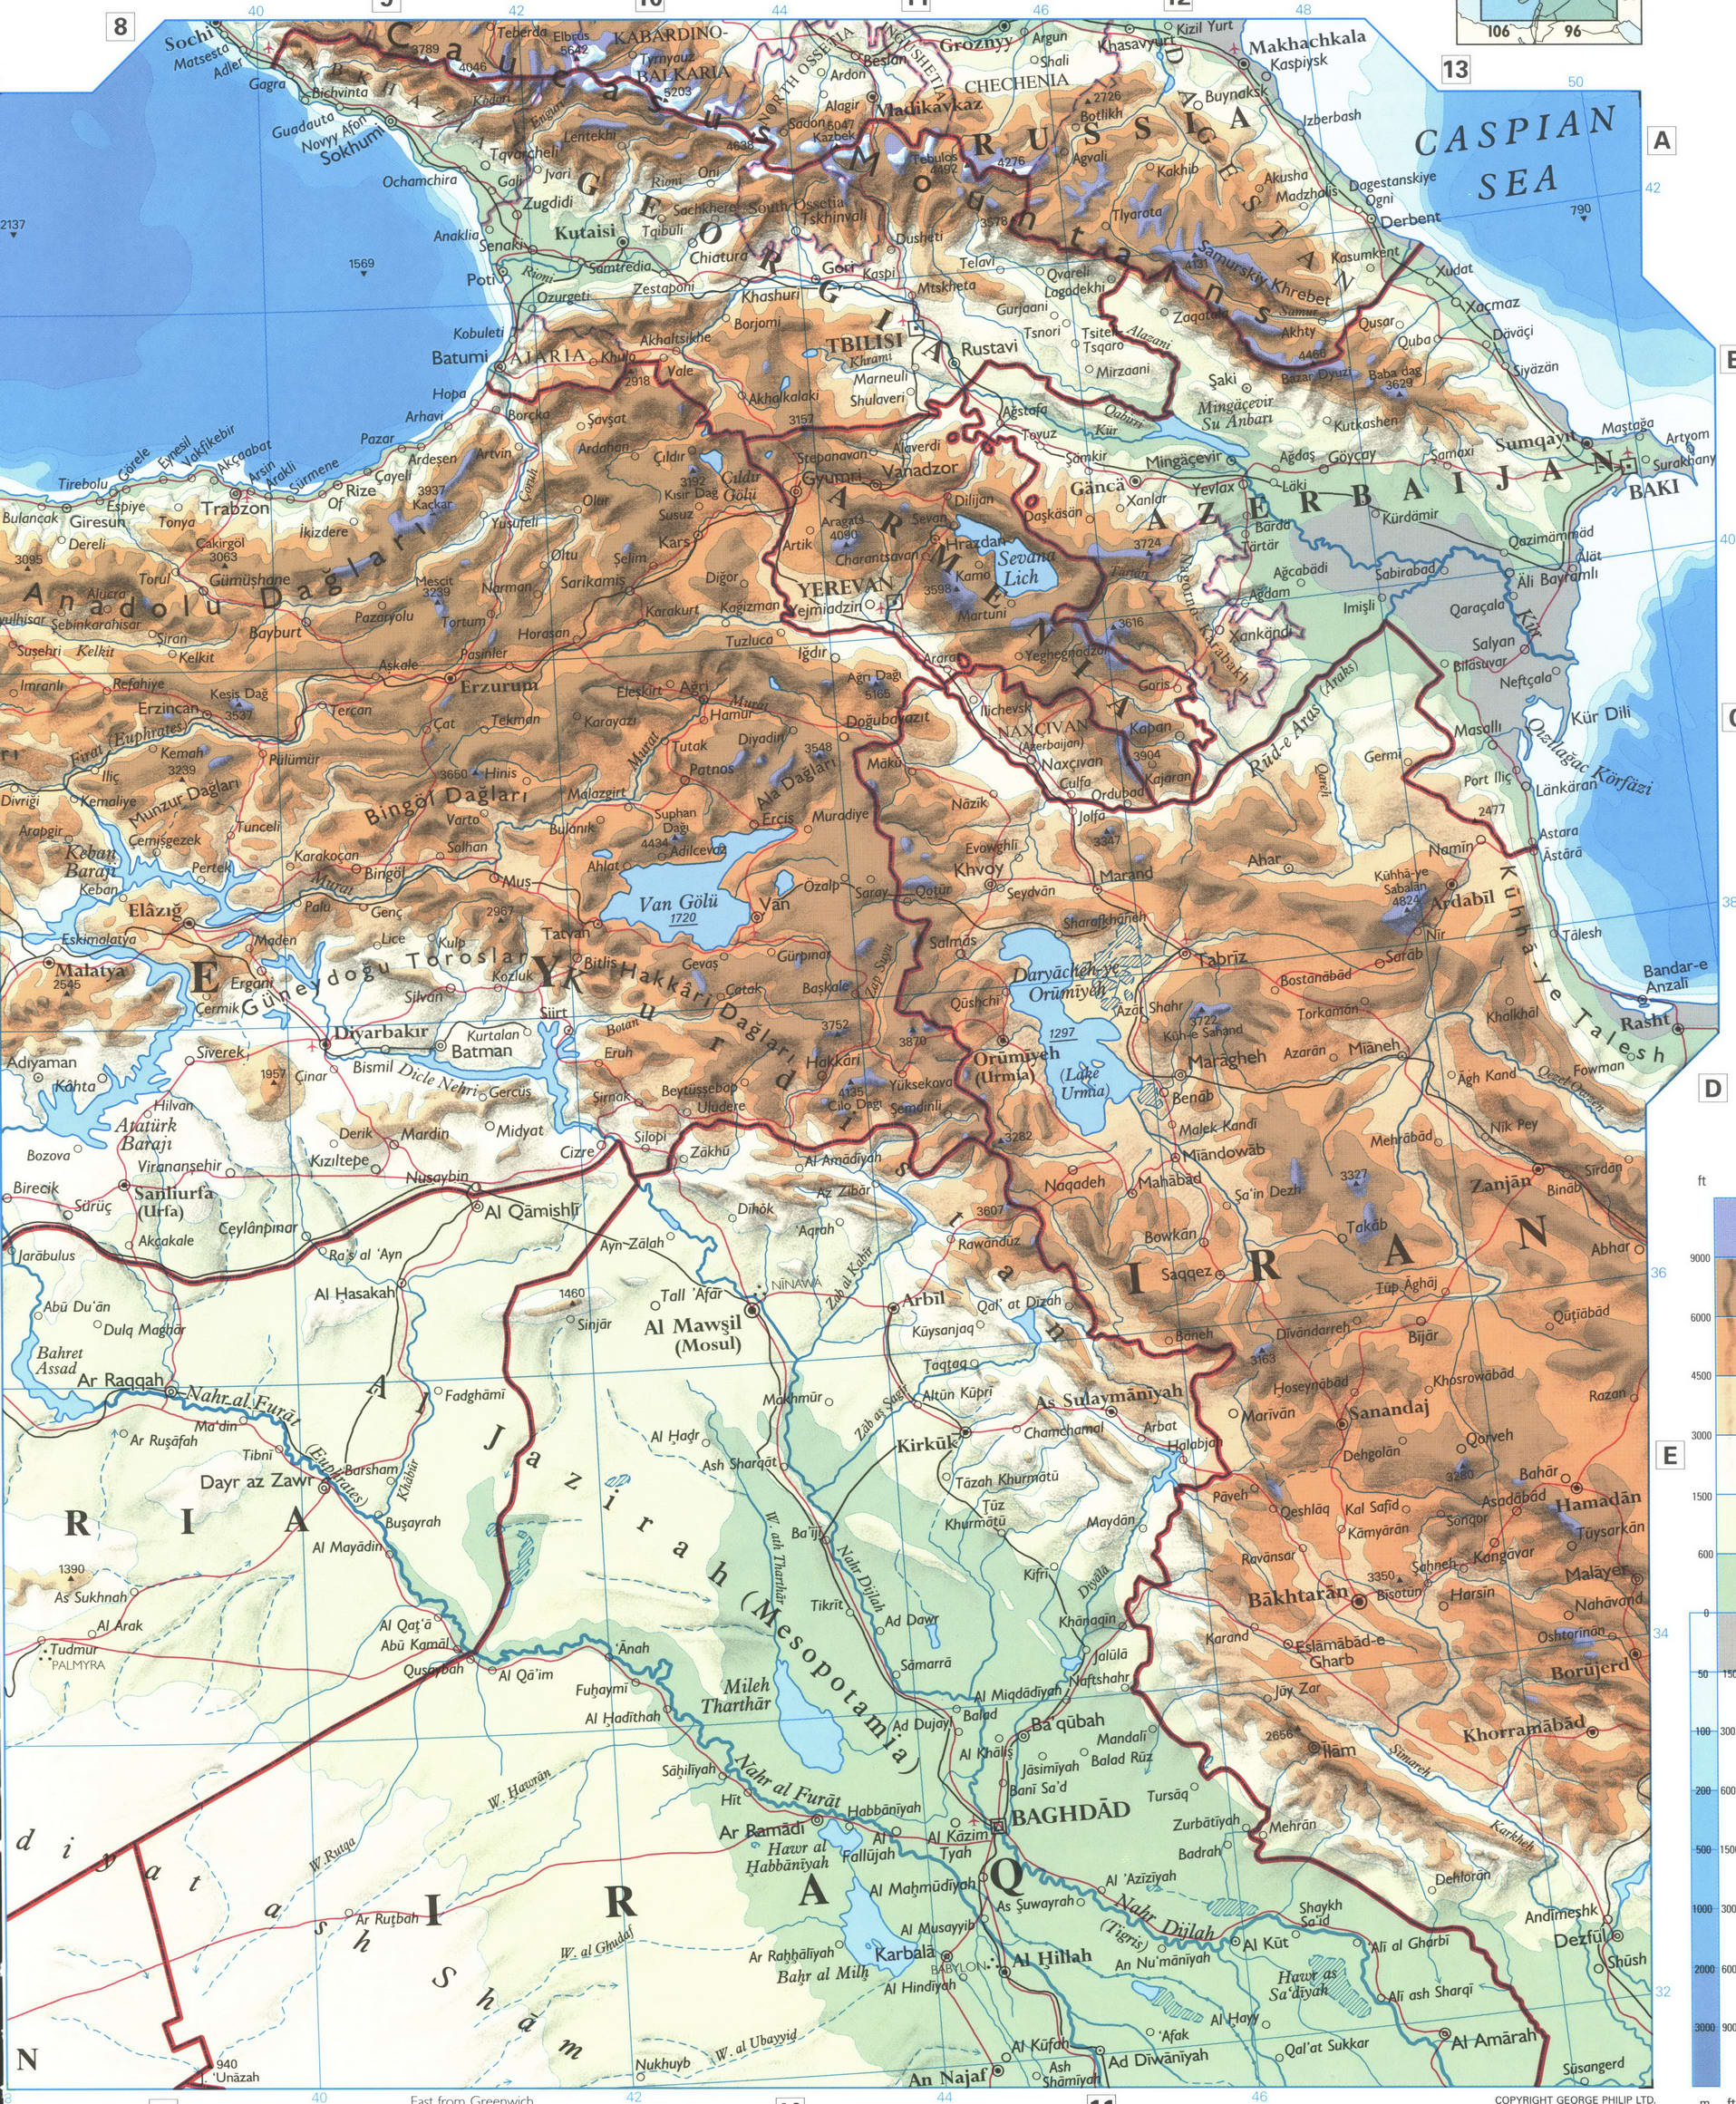 Turkey and Syria detailed map